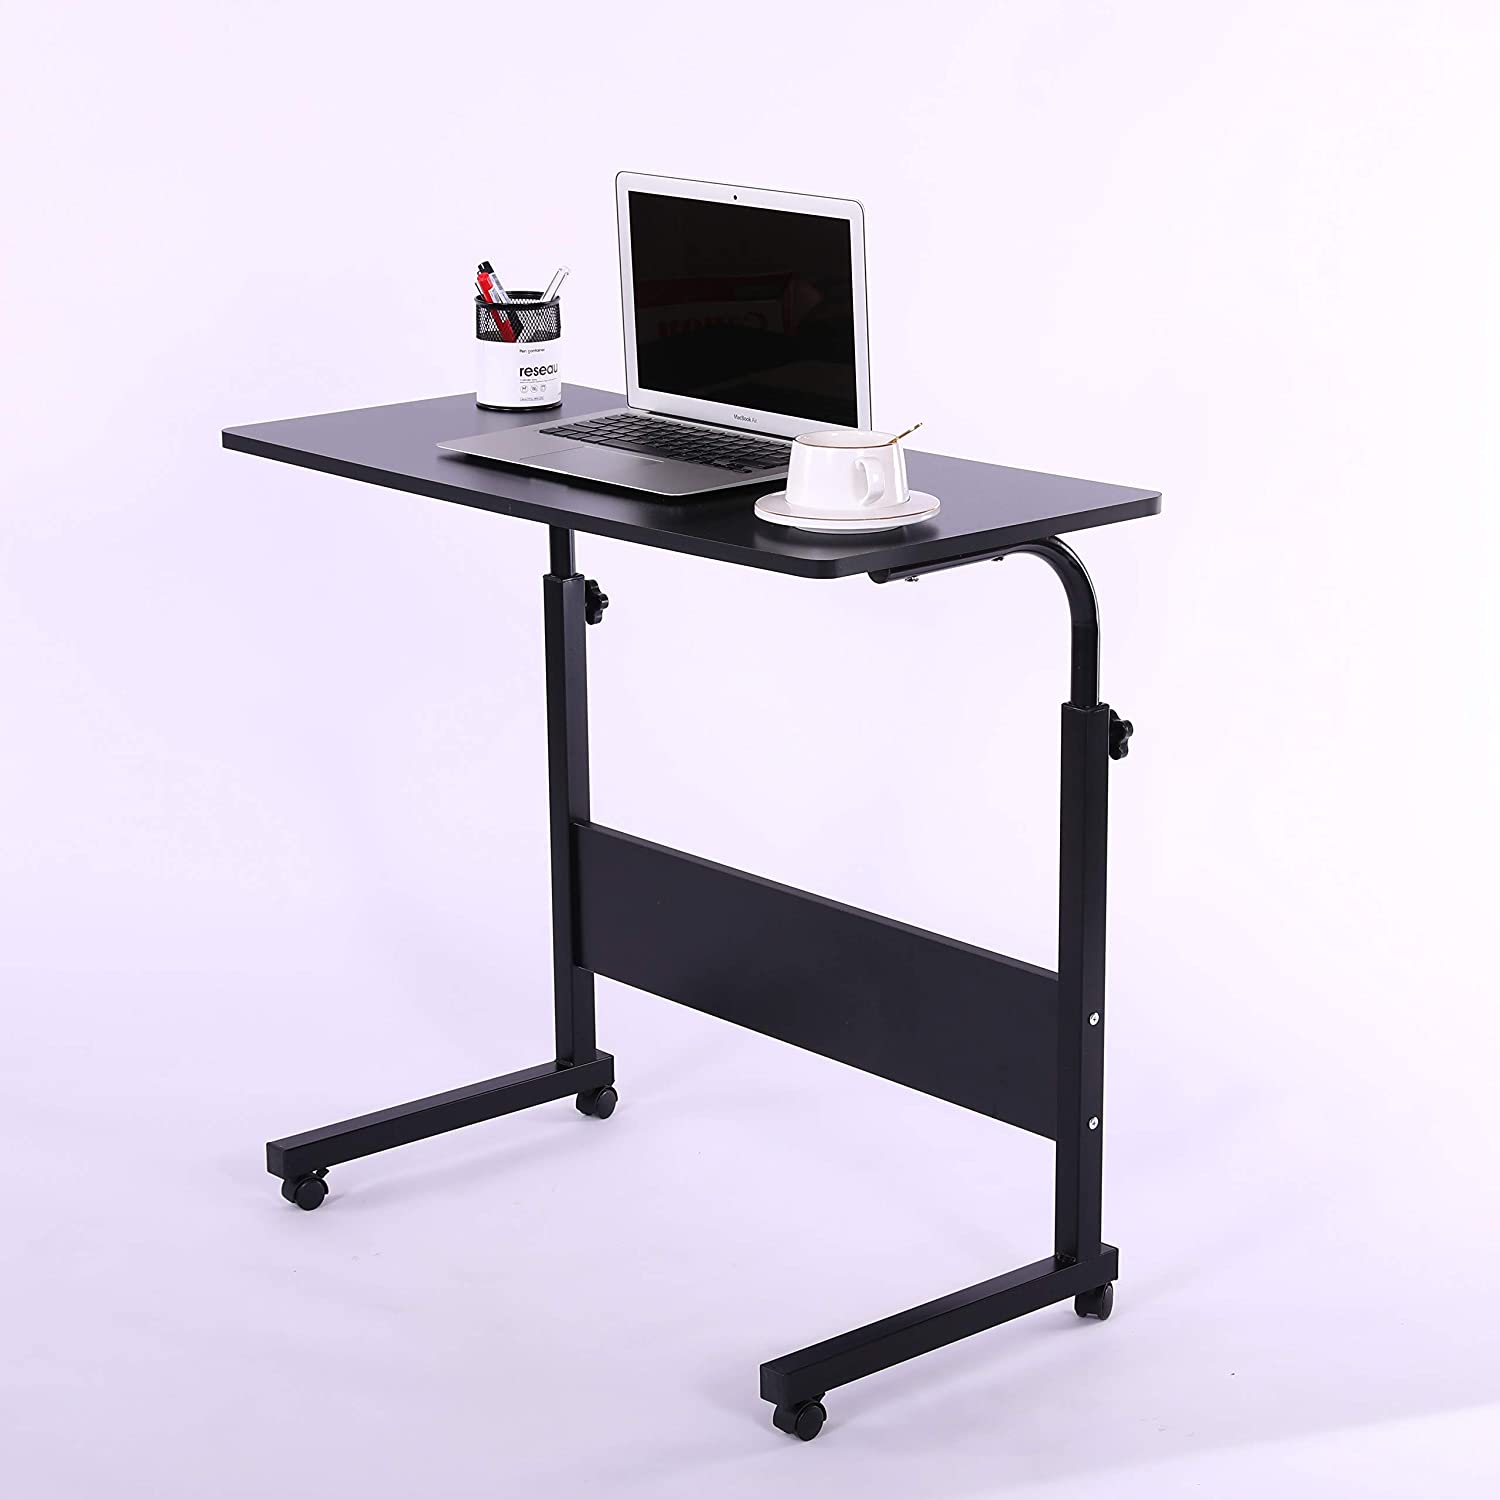 "Laptop Cart 31.5"" Mobile Table Fancasa Movable Portable Adjustable Notebook Computer Stand with Wheels (Black)"